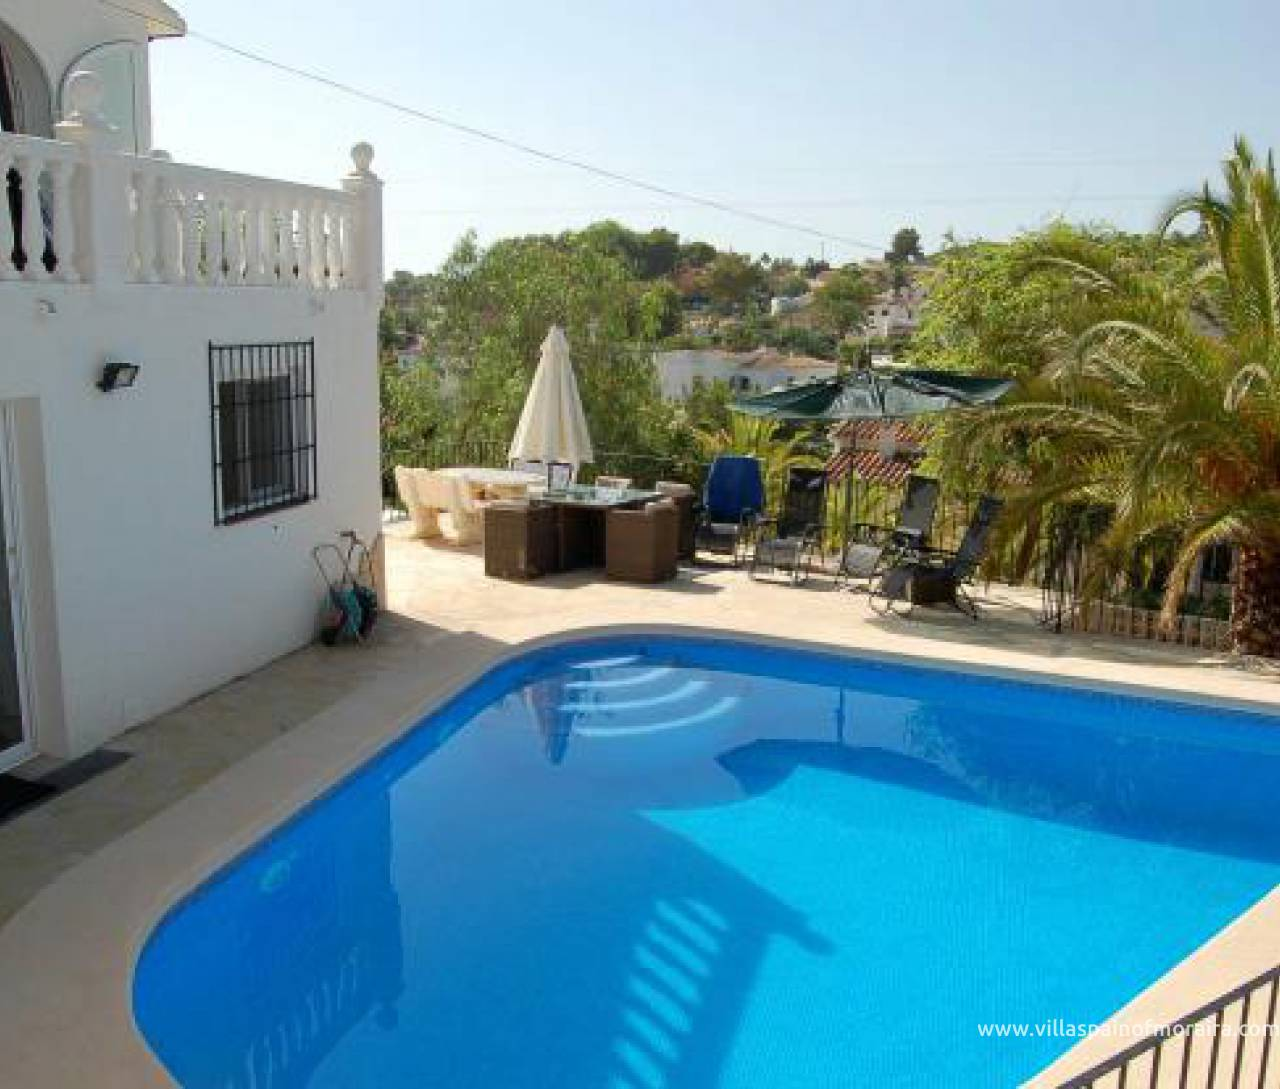 Villa for sale in La Fustera on Benissa Costa